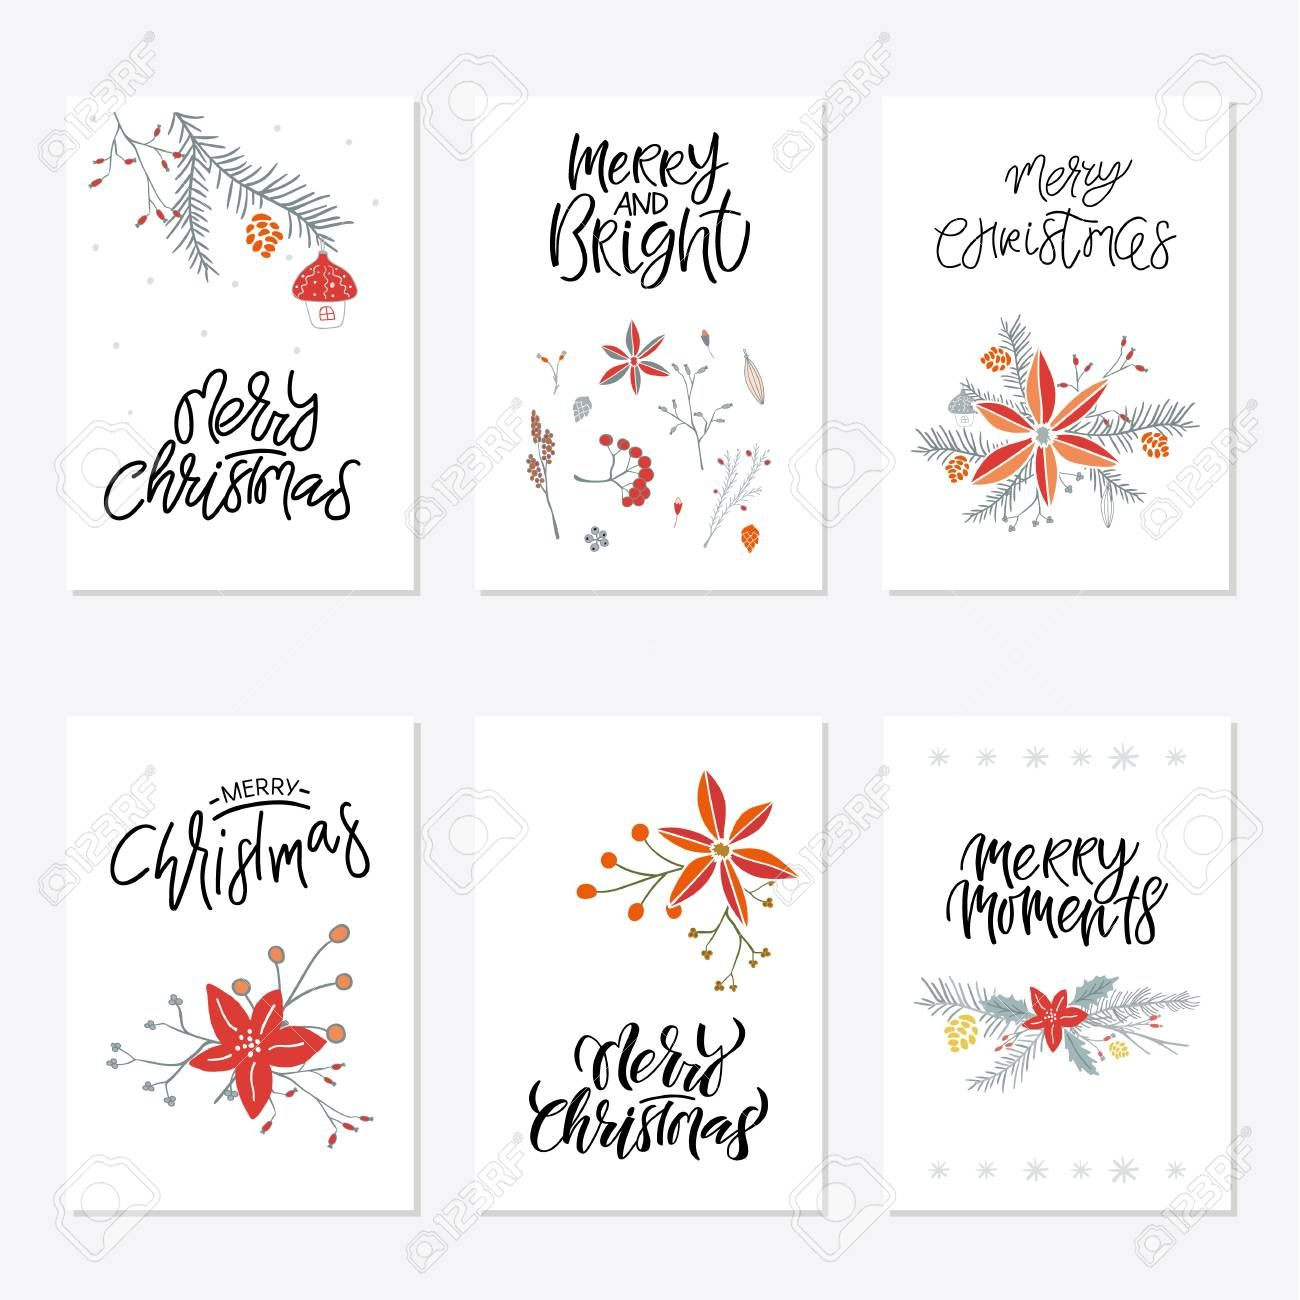 Collection Of 6 Cute Merry Christmas Gift Cards Set Of Six Printable With Printable Holiday Gift Card Template Holiday Card Template Printable Holiday Card